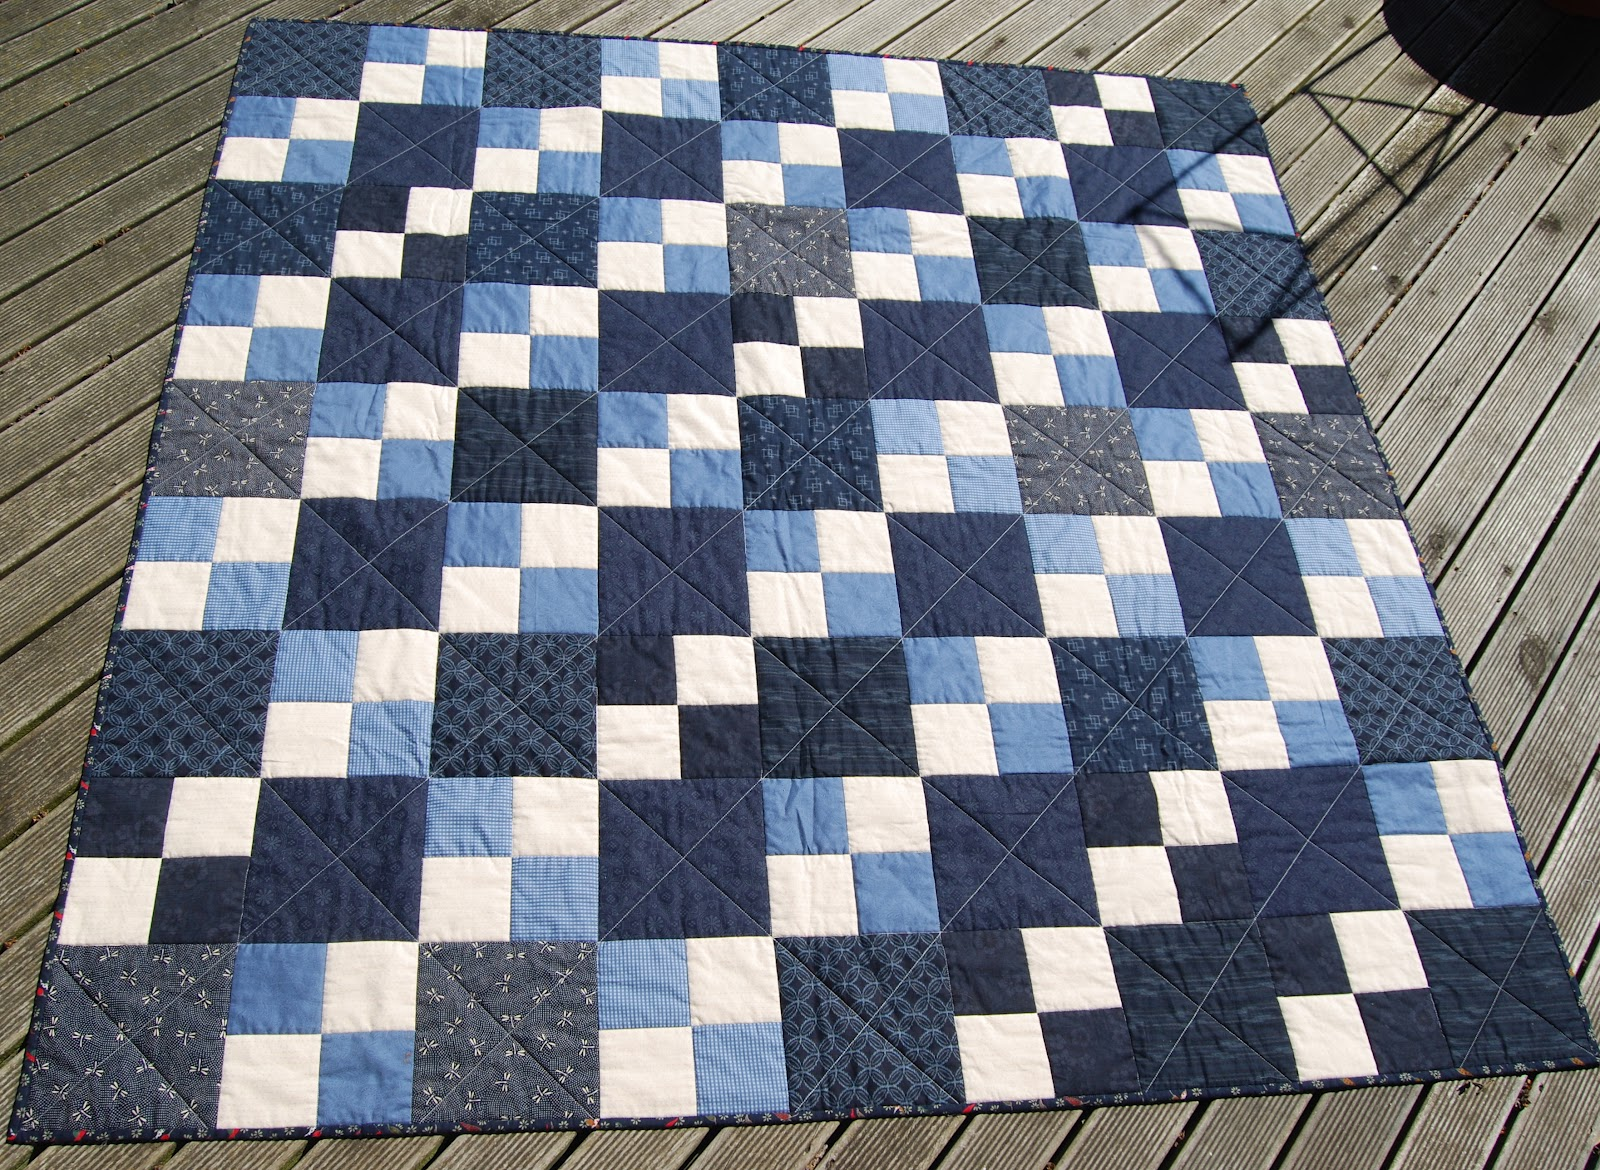 it so img pattern just quilting a my won is many not dad frilly quilt simple and quilts work for t chose too the this i hobbies beautiful because man